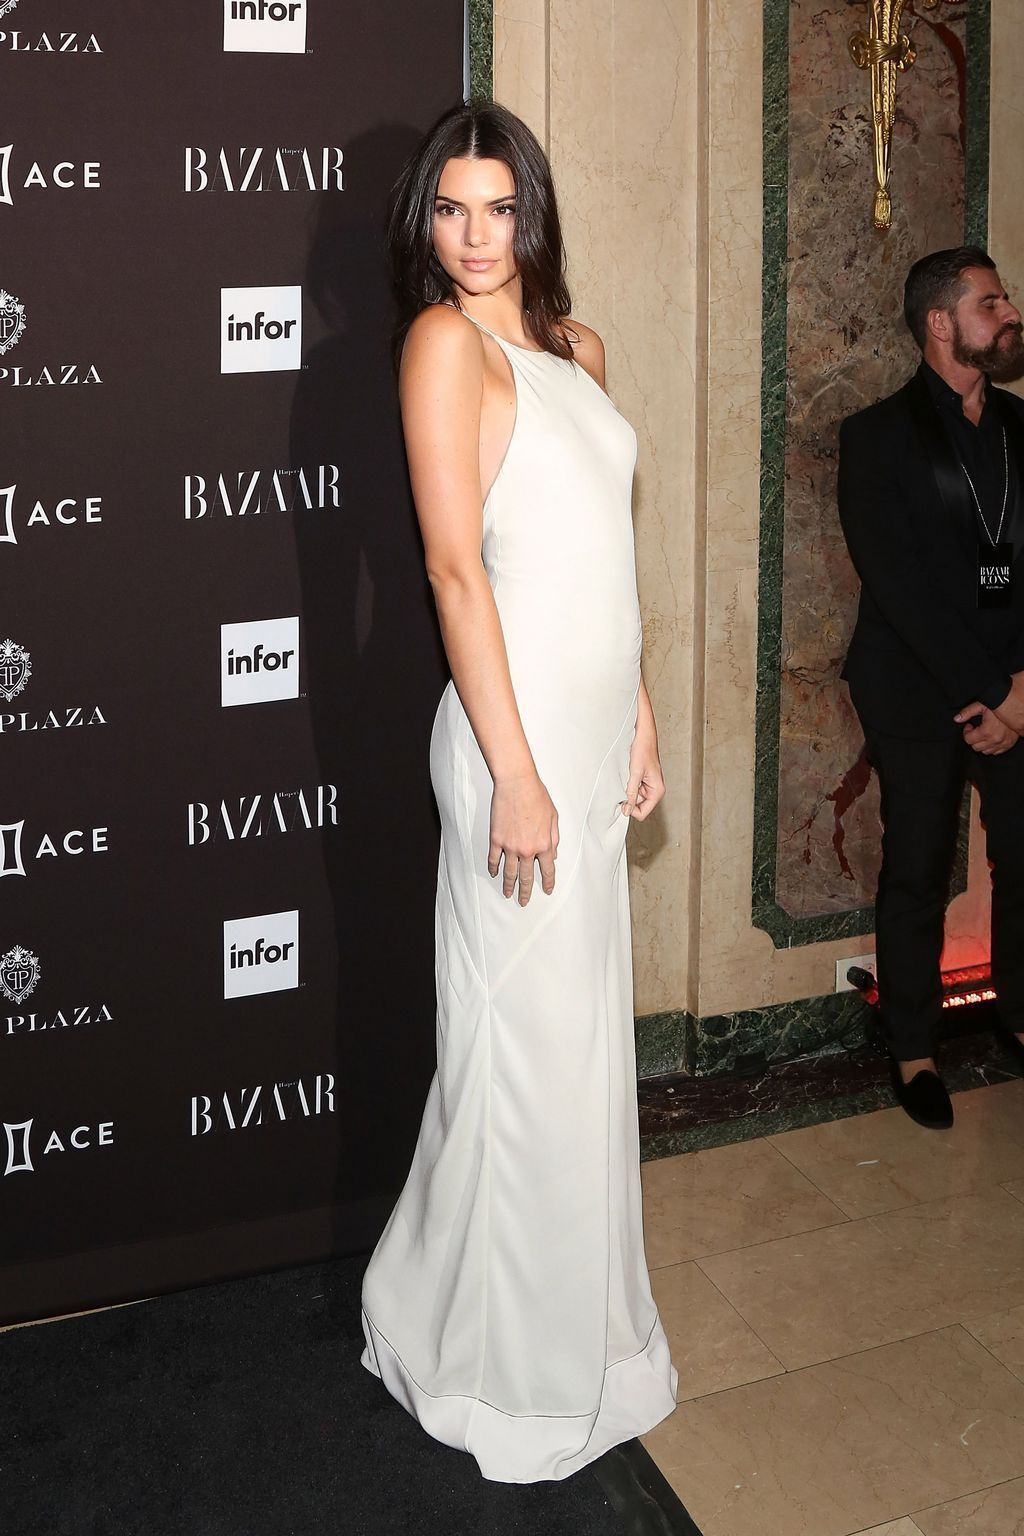 kendallnjennerdaily: September 16, 2015 - At the 2015 Harper's BAZAAR ICONS Event at the Plaza Hotel in New York